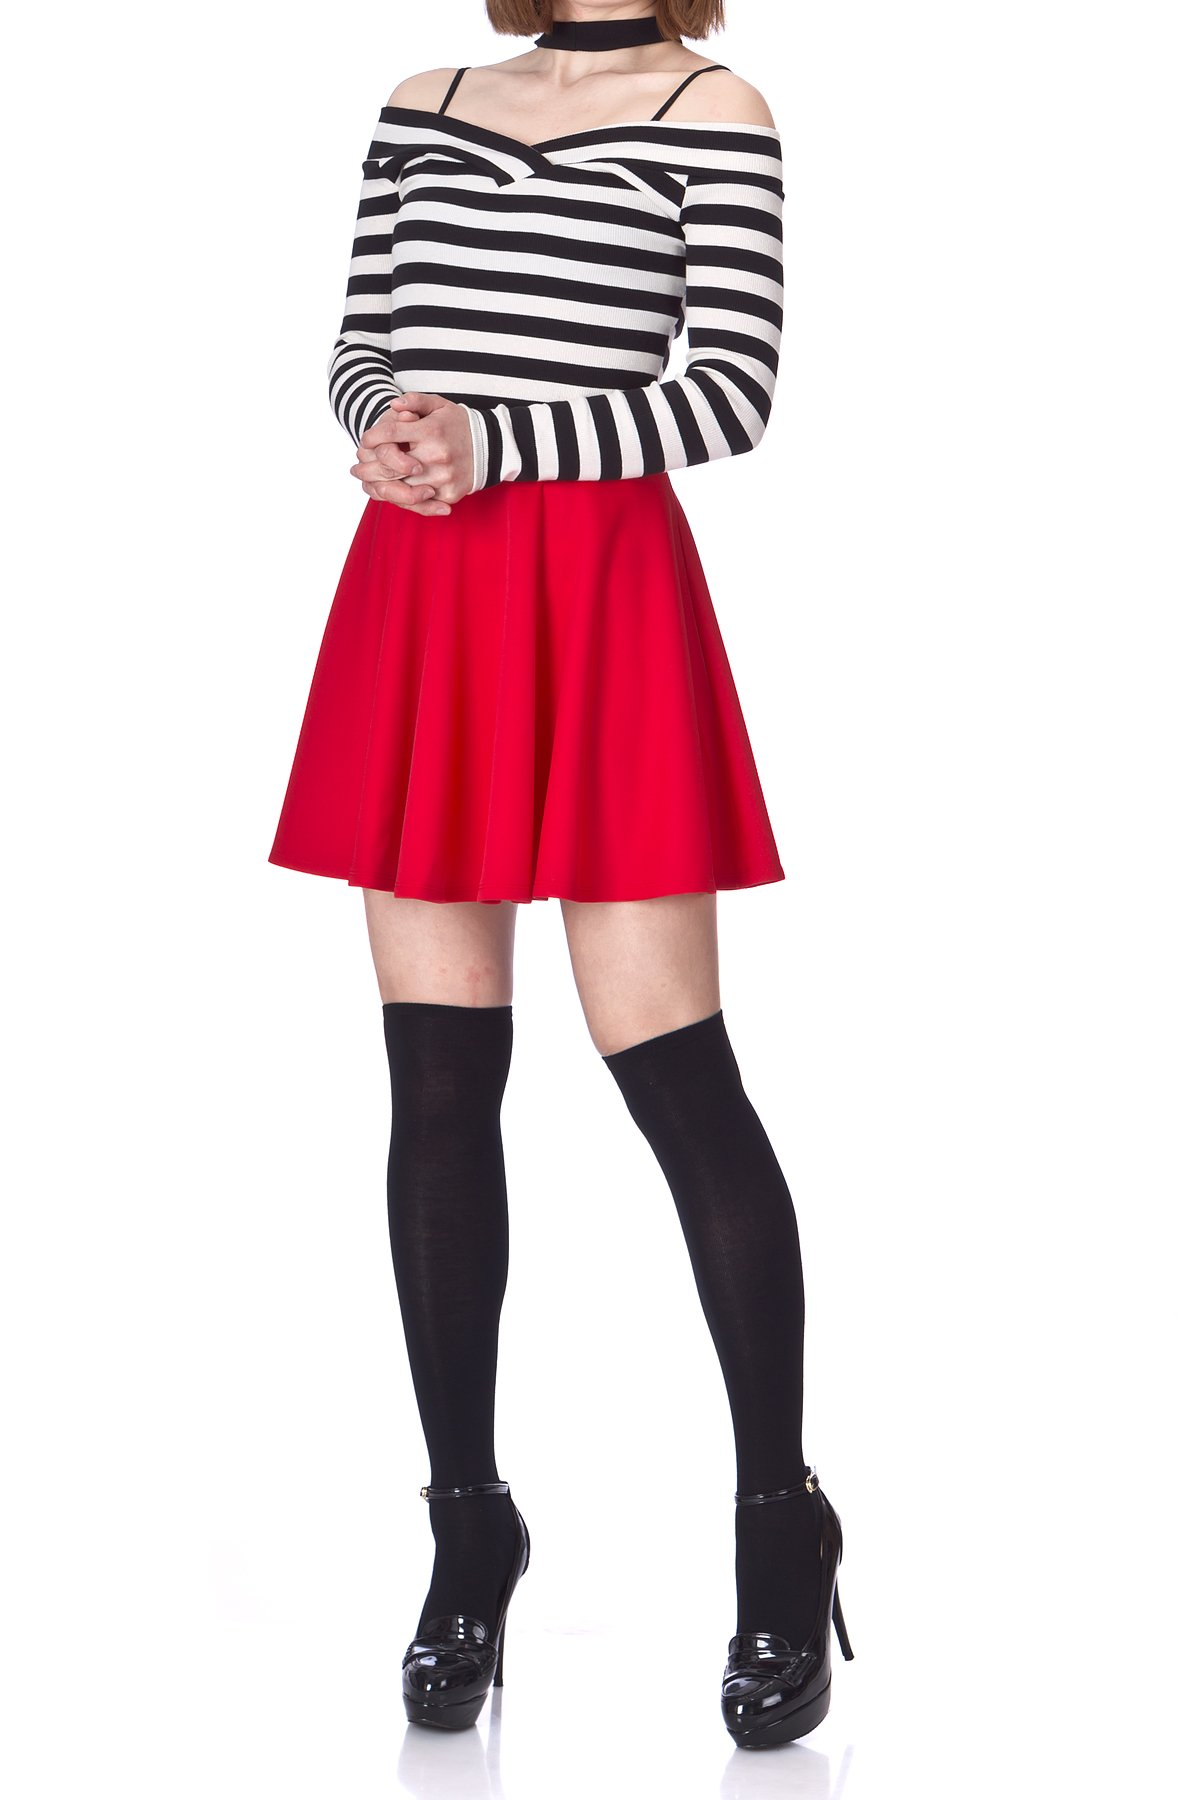 Flouncy High Waist A line Full Flared Circle Swing Dance Party Casual Skater Short Mini Skirt Red 02 1